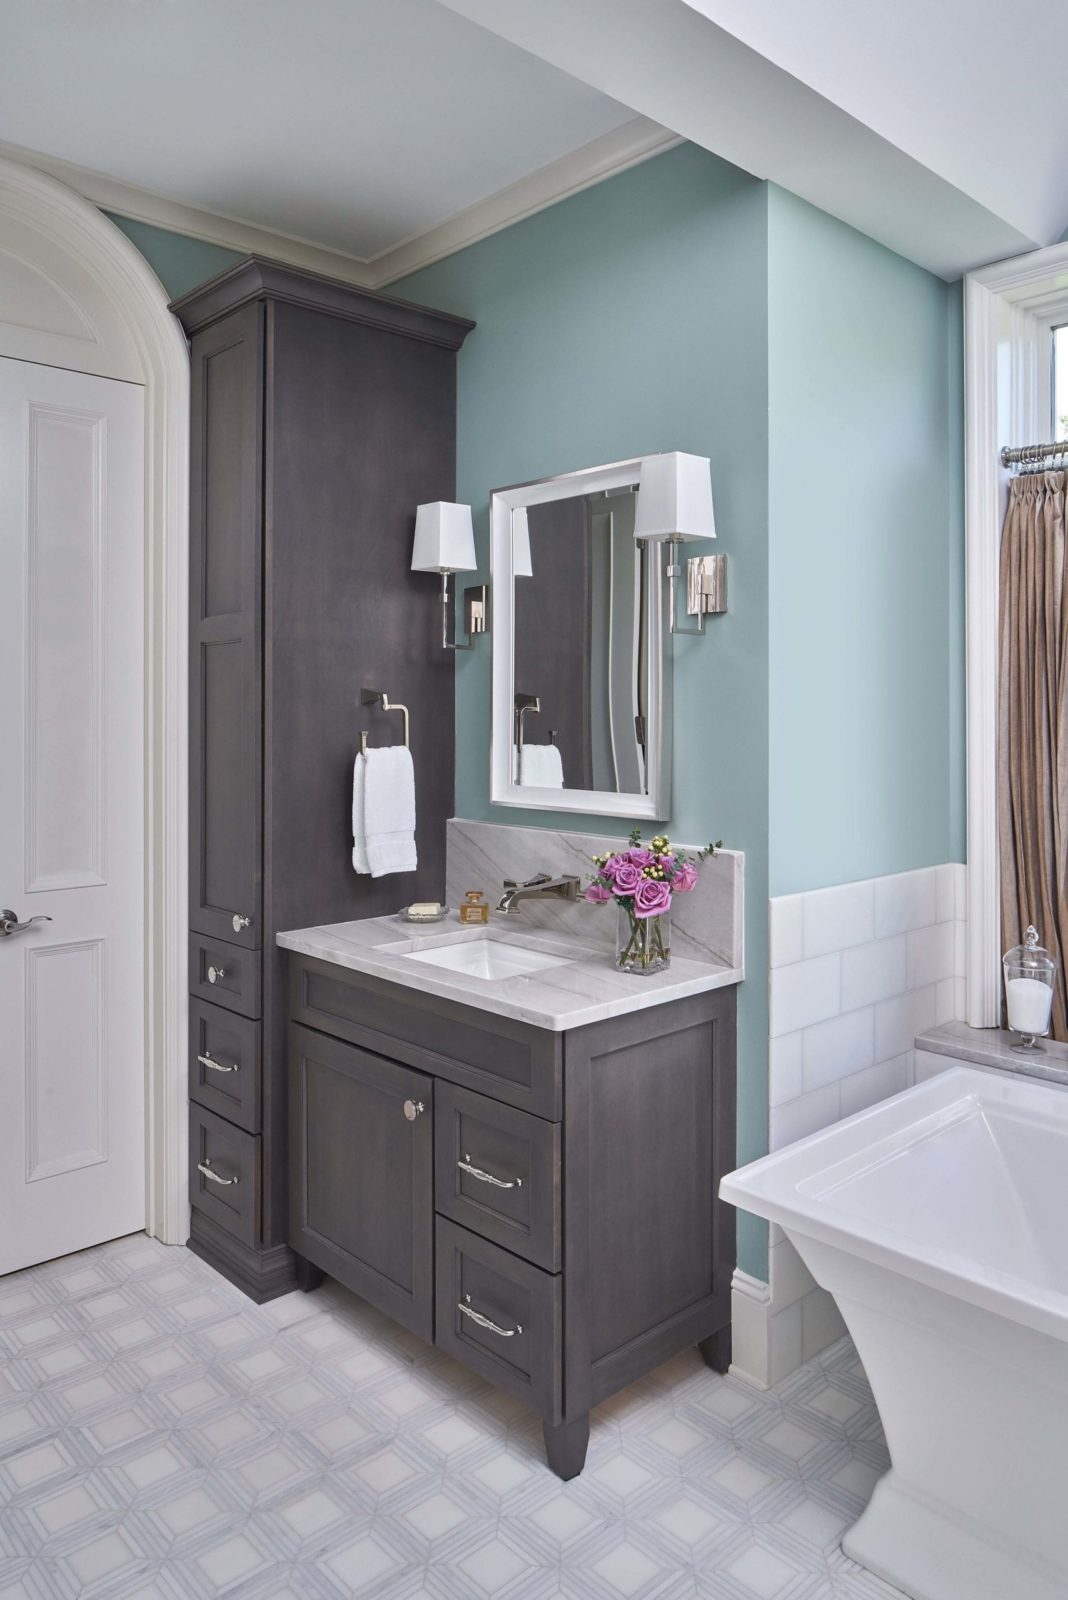 home_remodeling_seminar_in_charlotte_nc